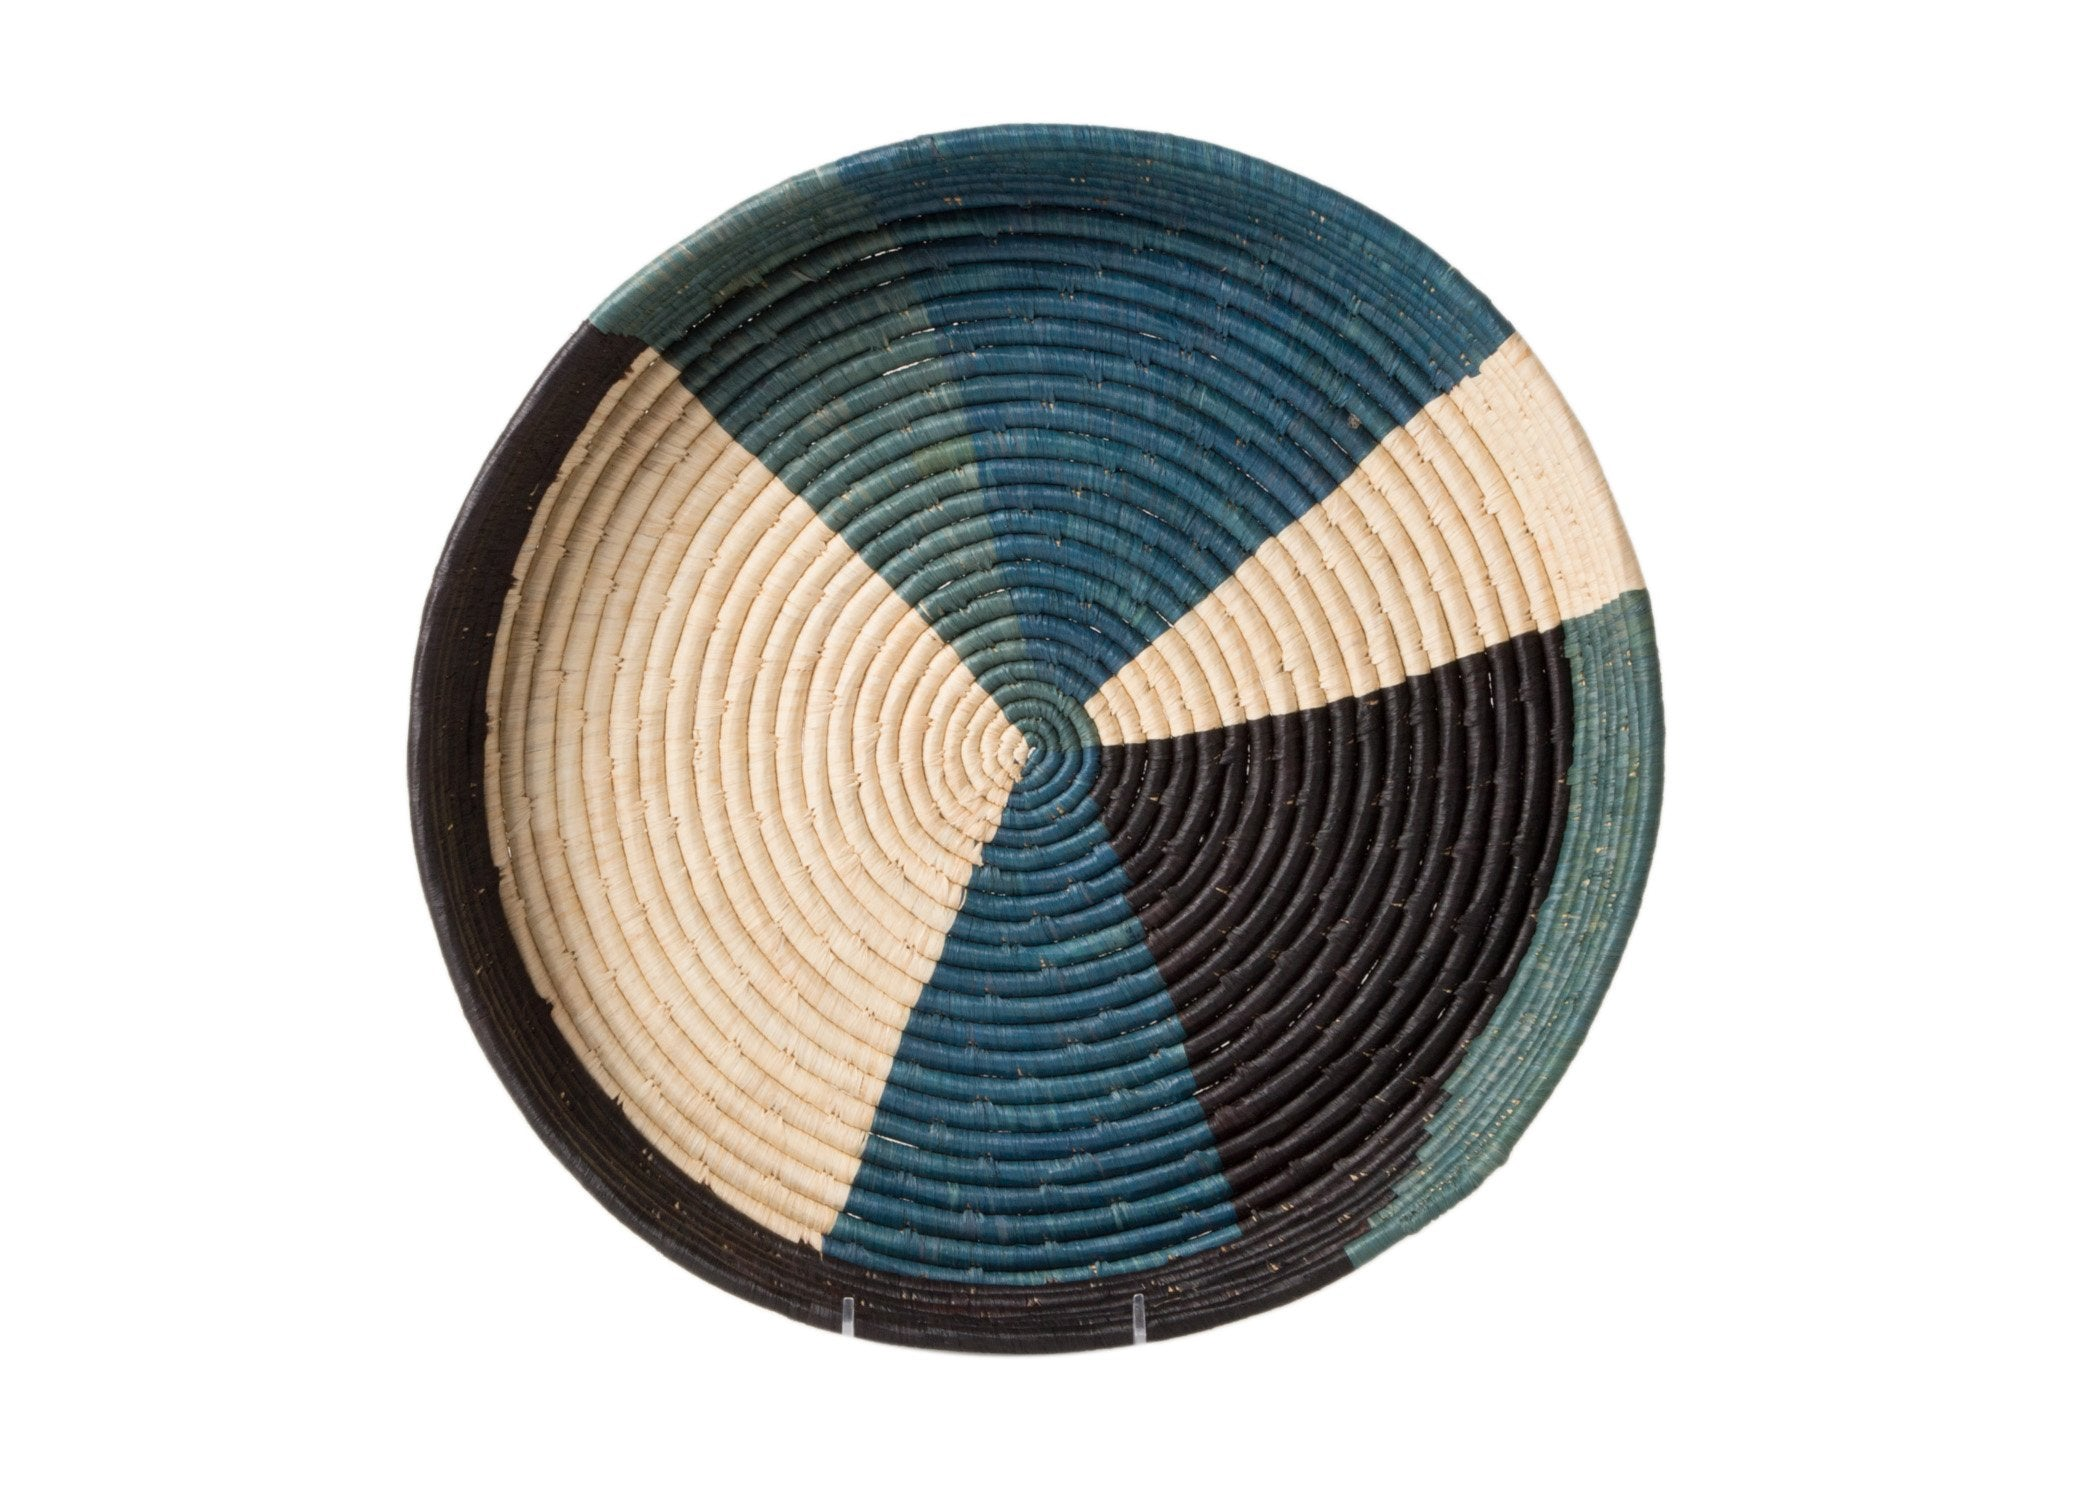 Cool Color Blocked Raffia Tray - KAZI - Artisan made high quality home decor and wall art